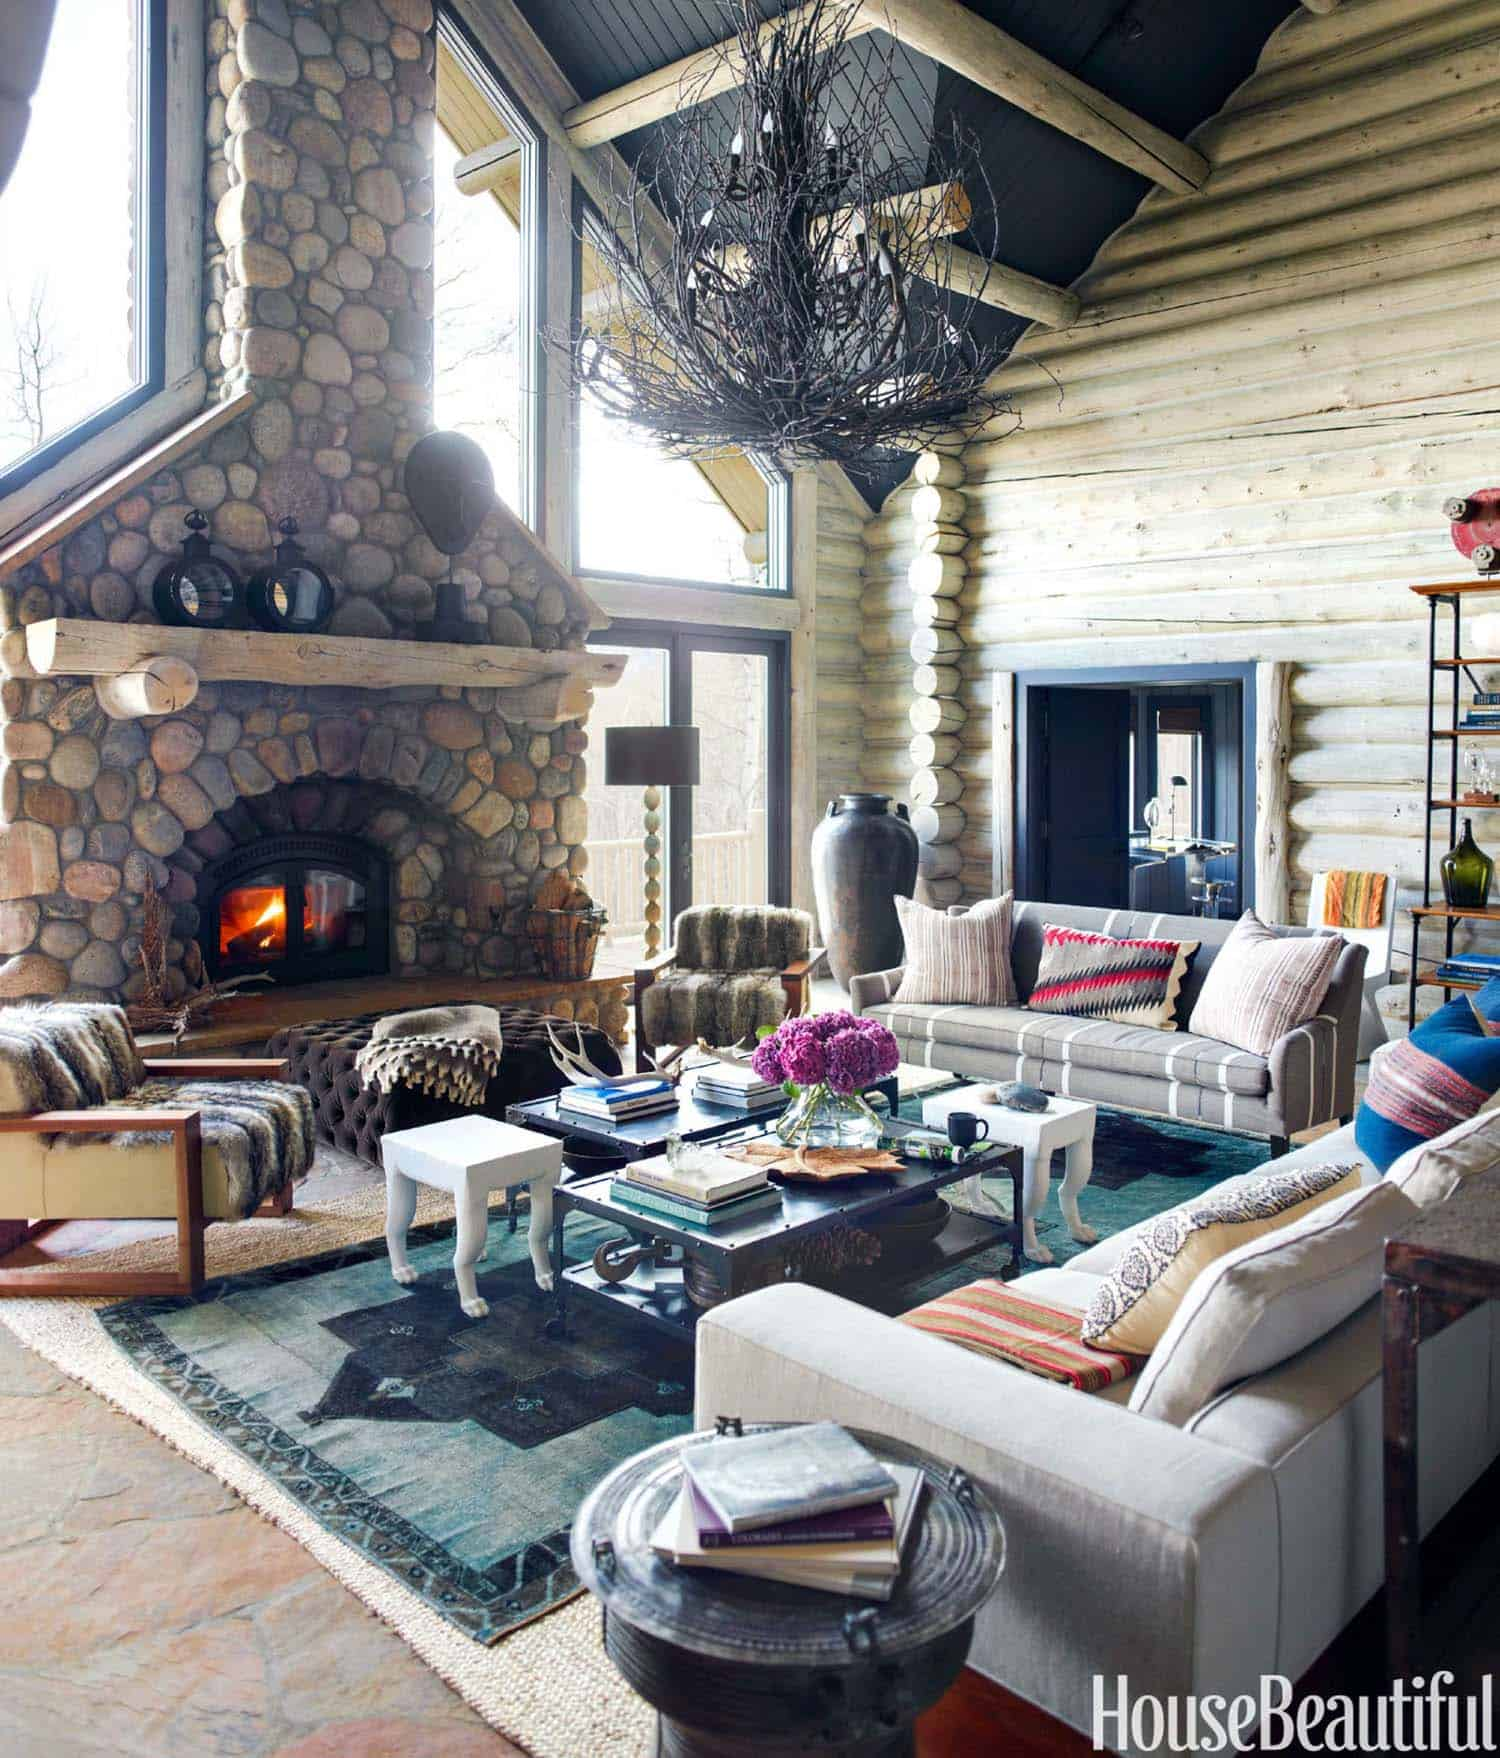 Ultra-cozy Rustic Log Cabin Nestled In The Rocky Mountains